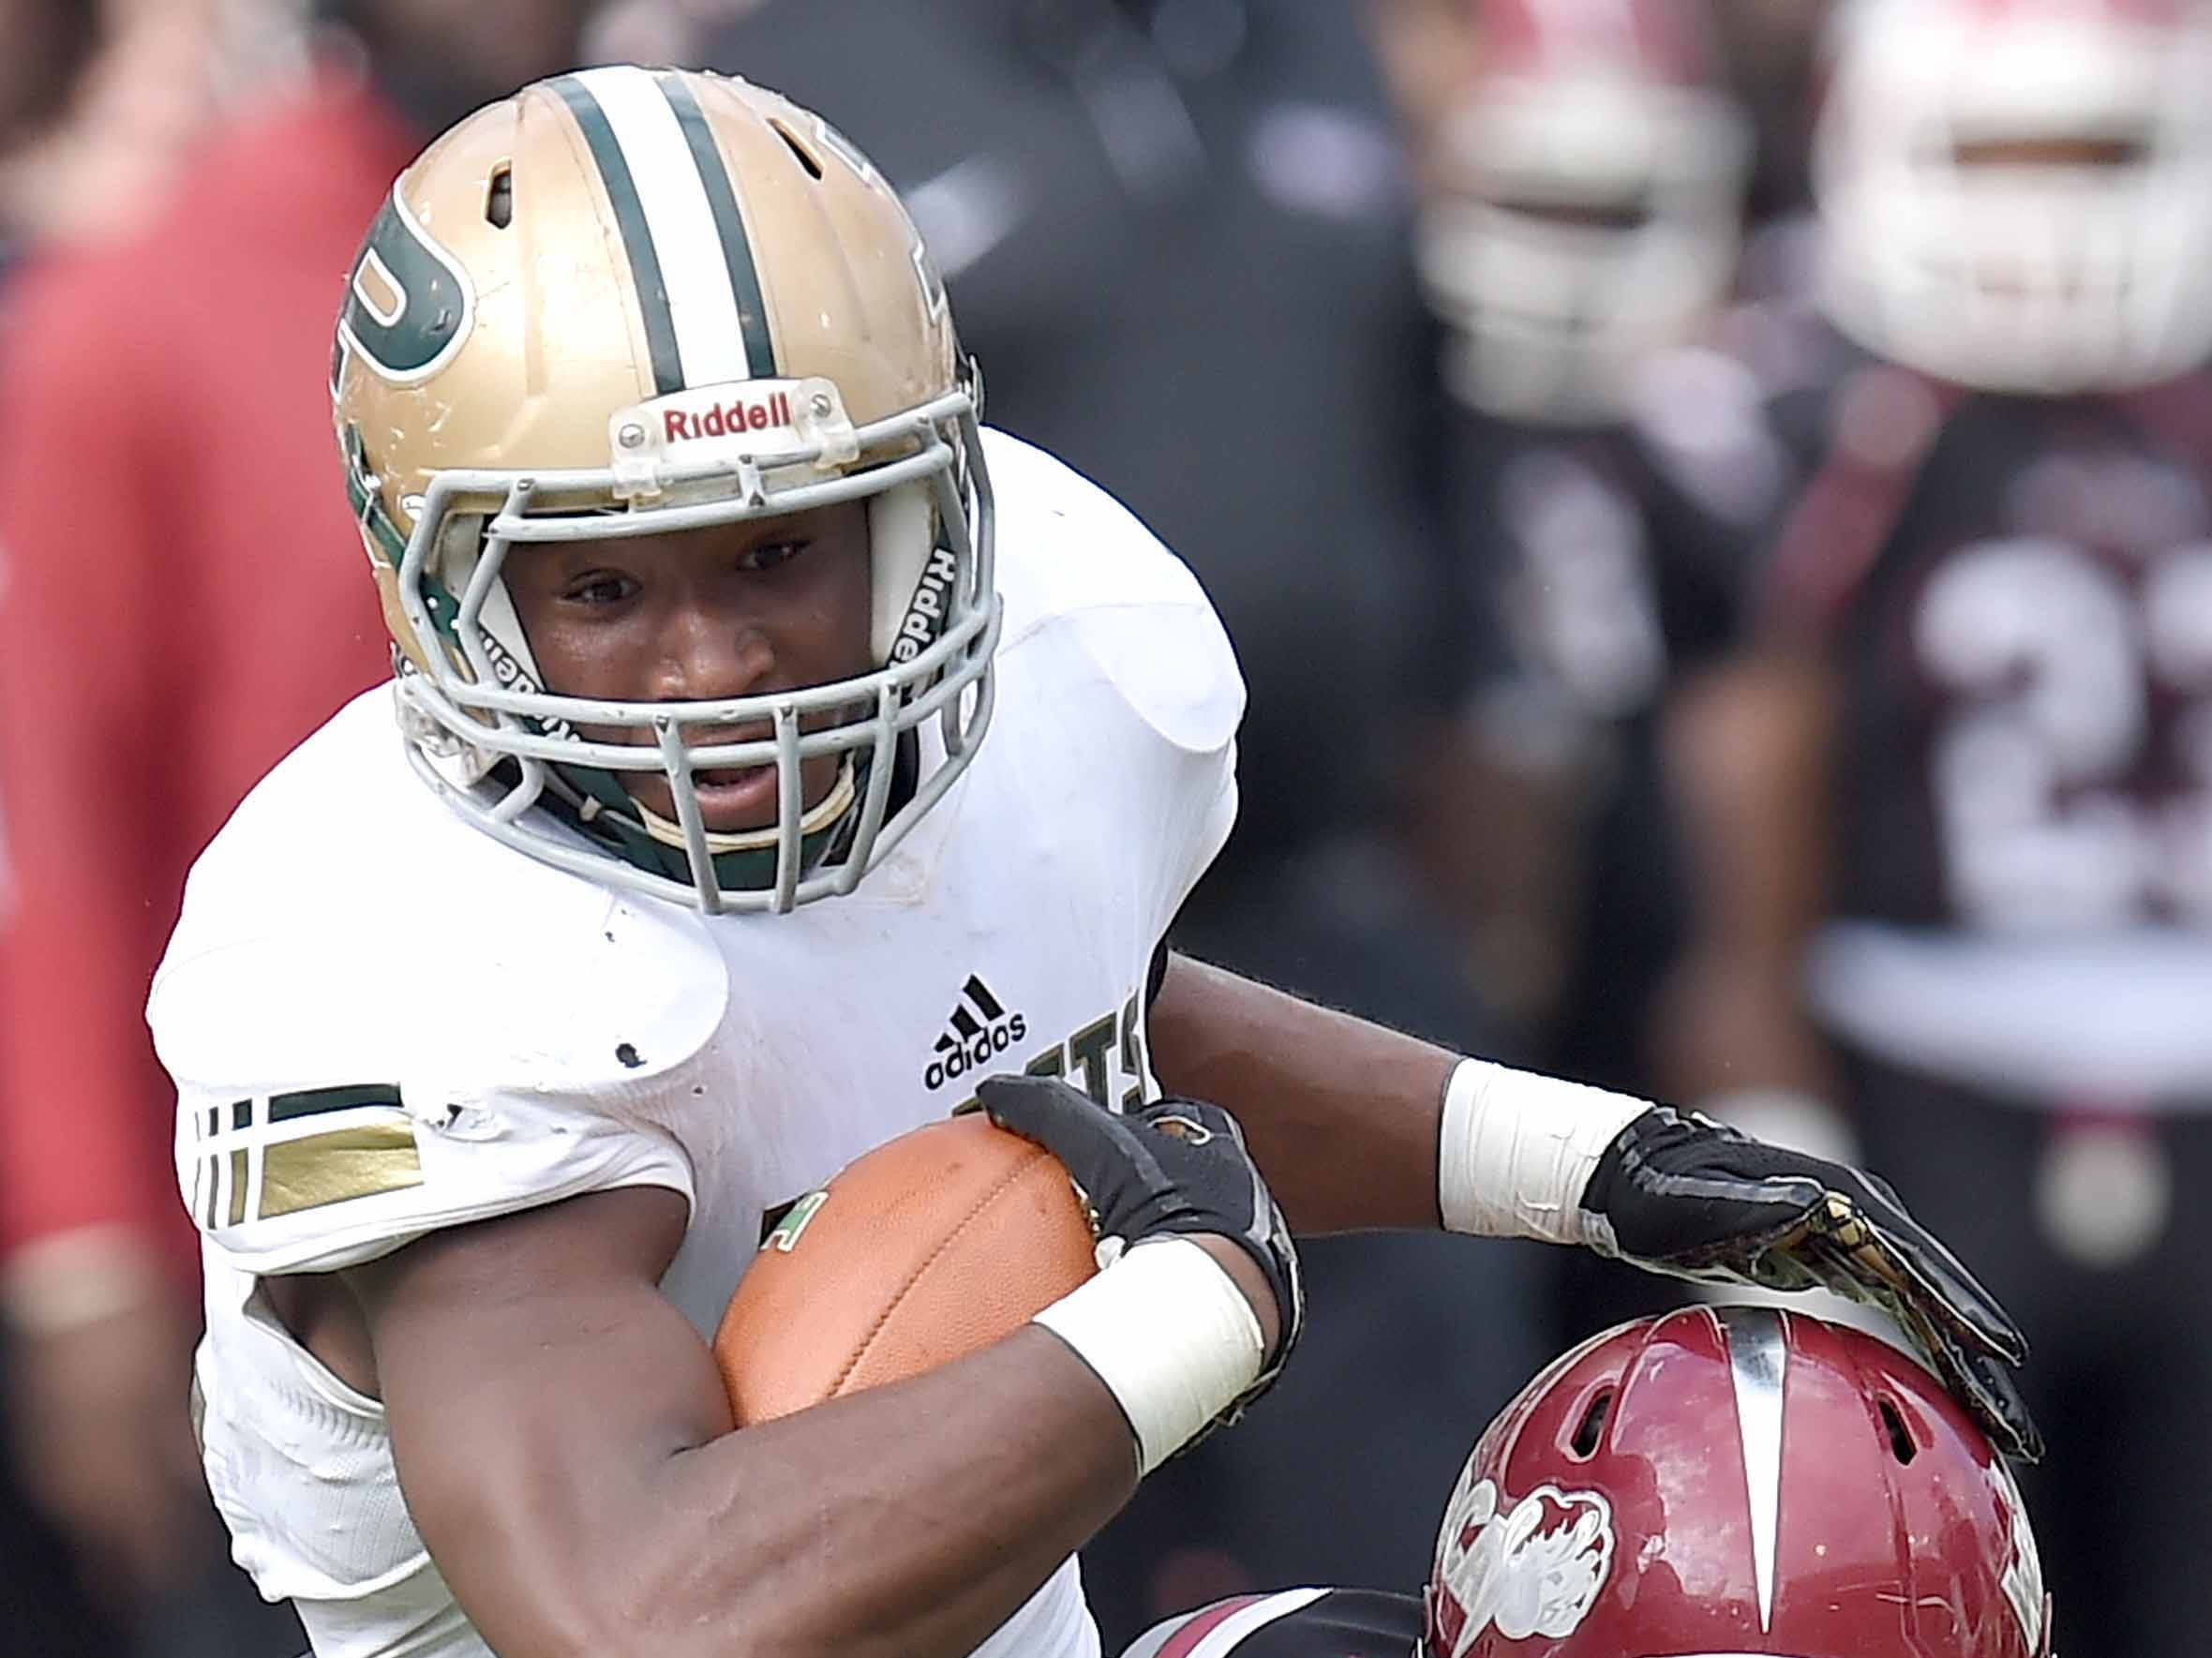 Poplarville's Chase Shears (14) runs against Louisville on Saturday, December 1, 2018, in the MHSAA BlueCross BlueShield Gridiron Classic High School Football Championships in M.M. Roberts Stadium on the University of Southern Mississippi campus in Hattiesburg, Miss.